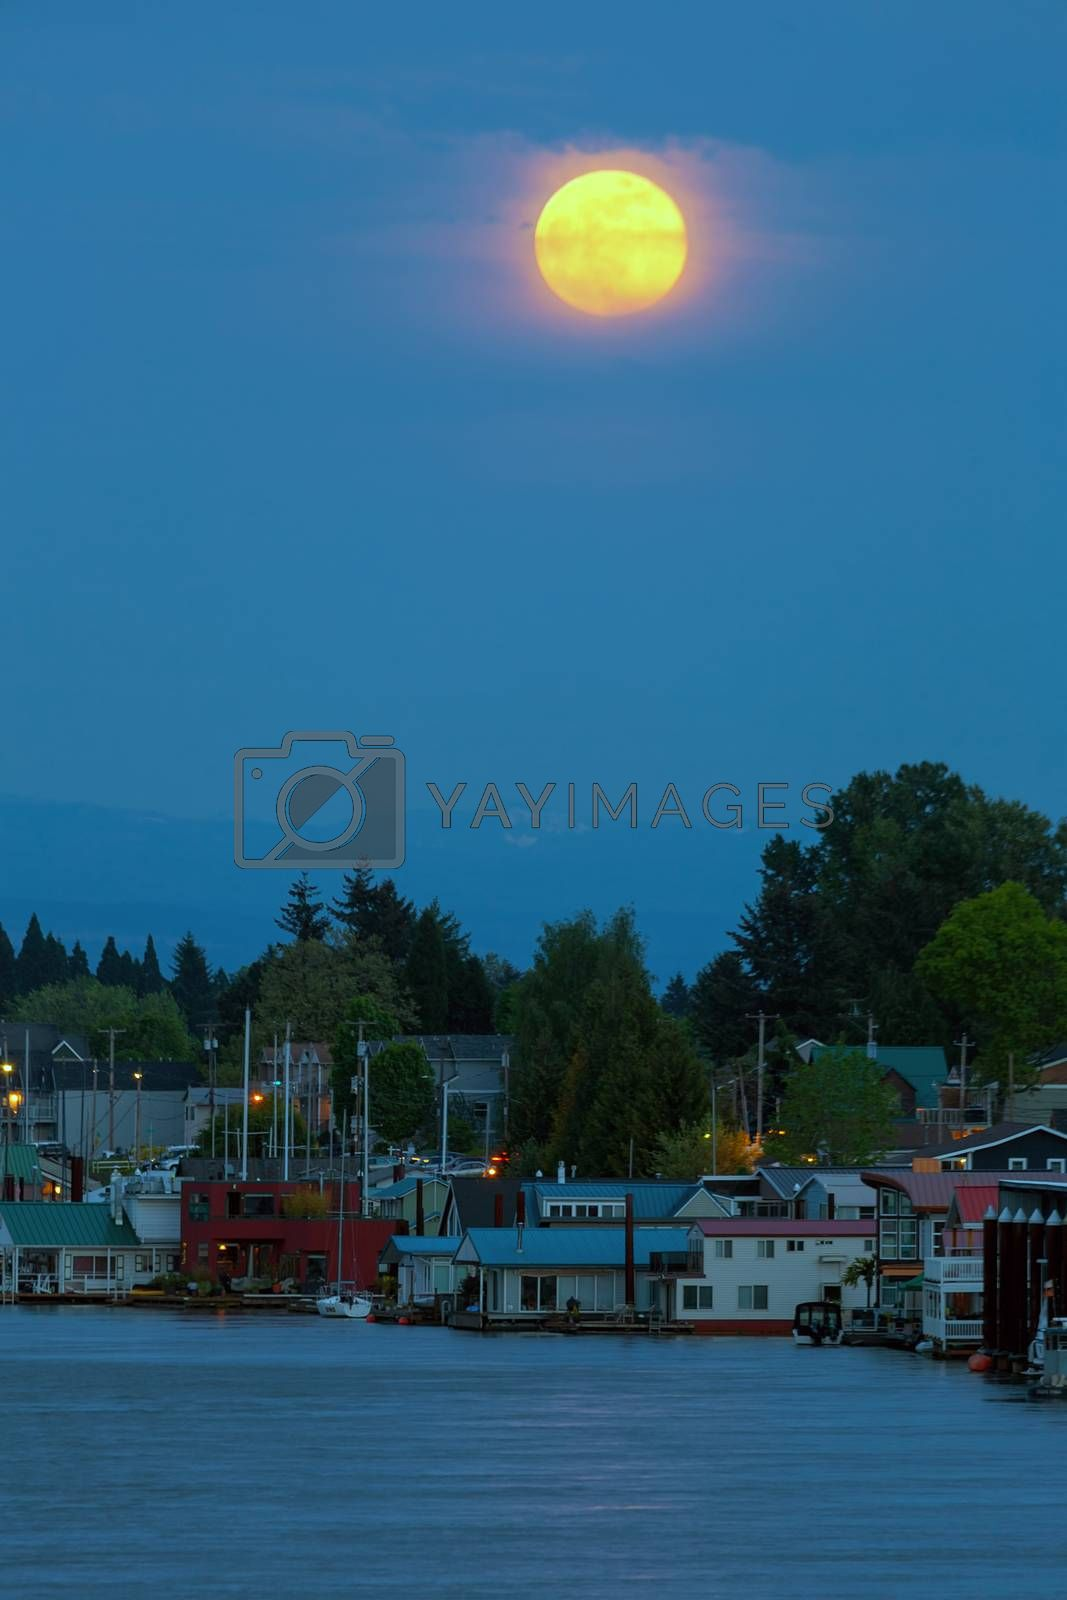 Full Moon Over Floating Homes on Columbia River by Davidgn